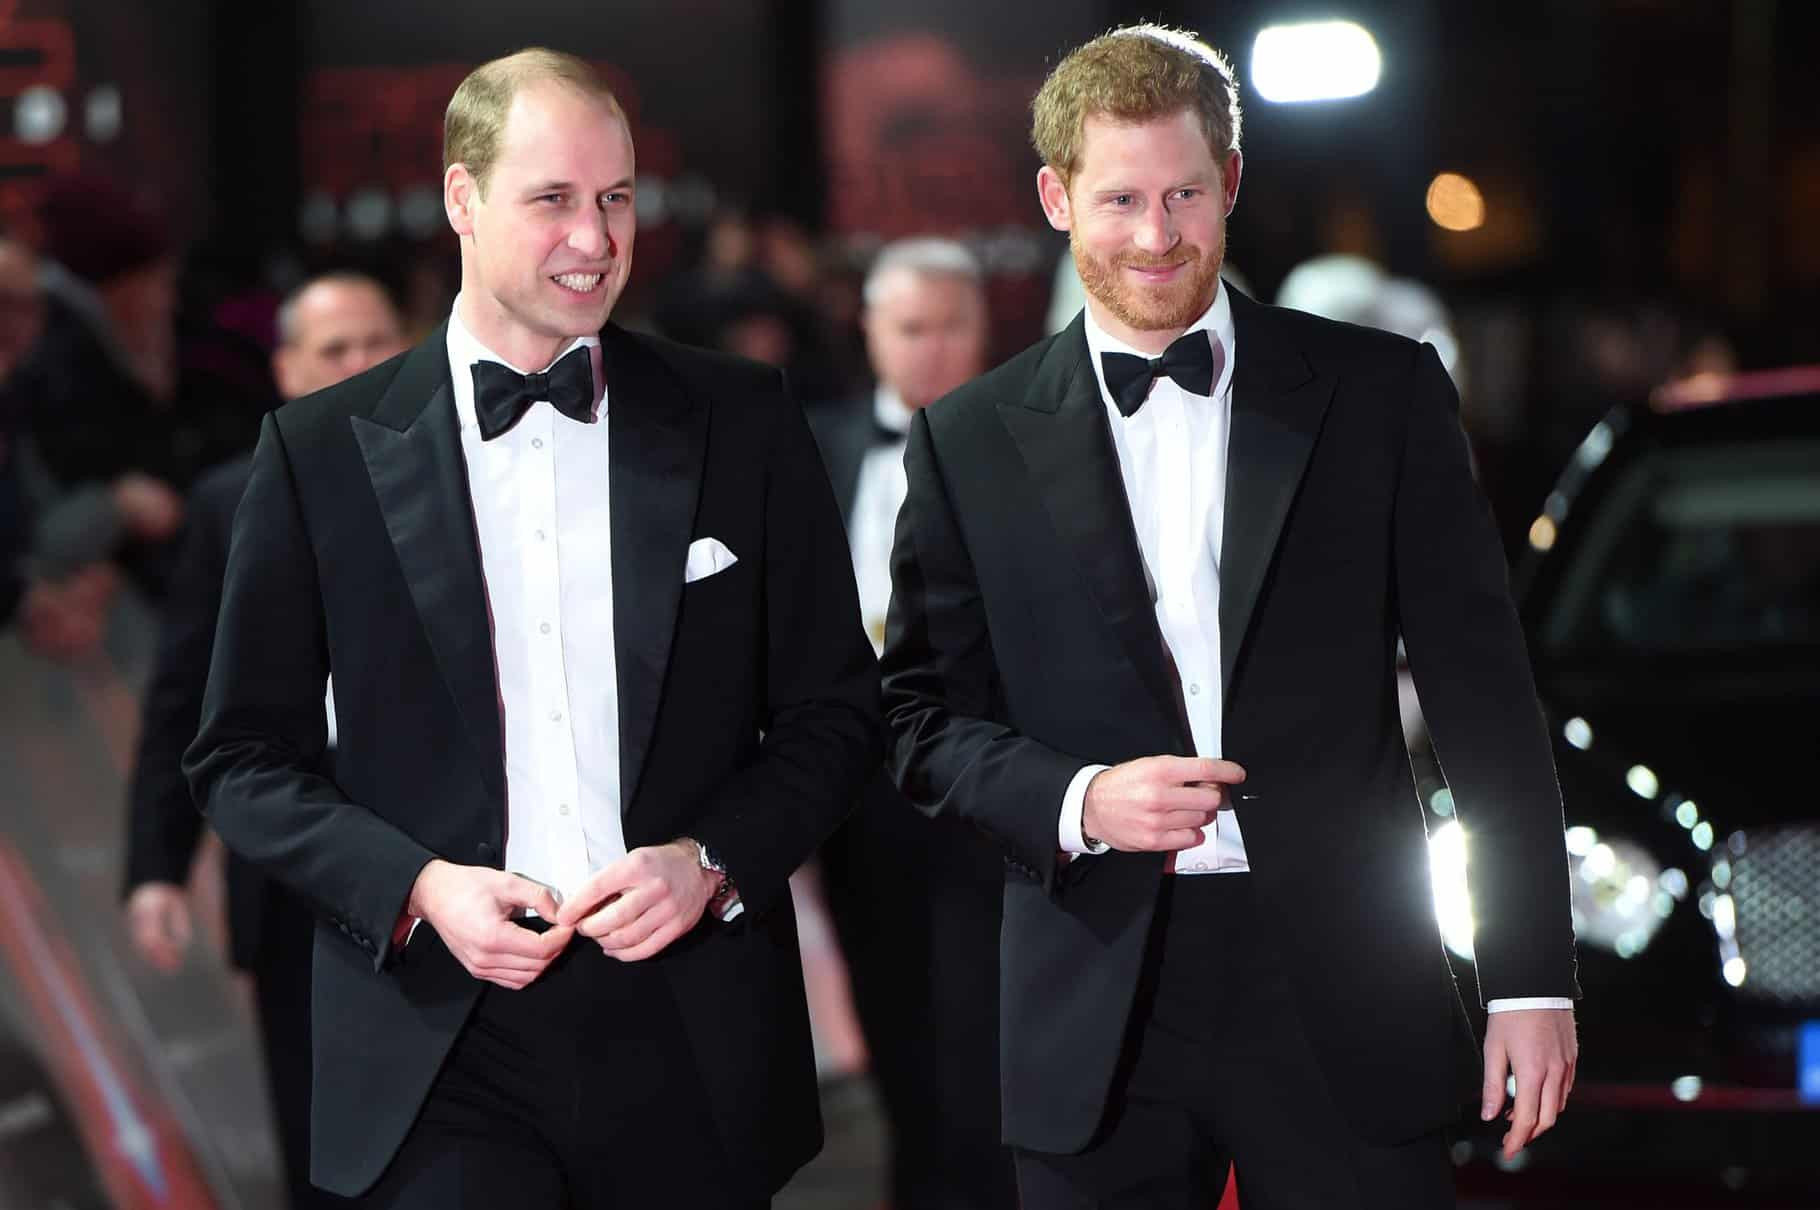 Photo of Royal wedding: Married Prince William will be Prince Harry's best man at his wedding to Meghan Markle